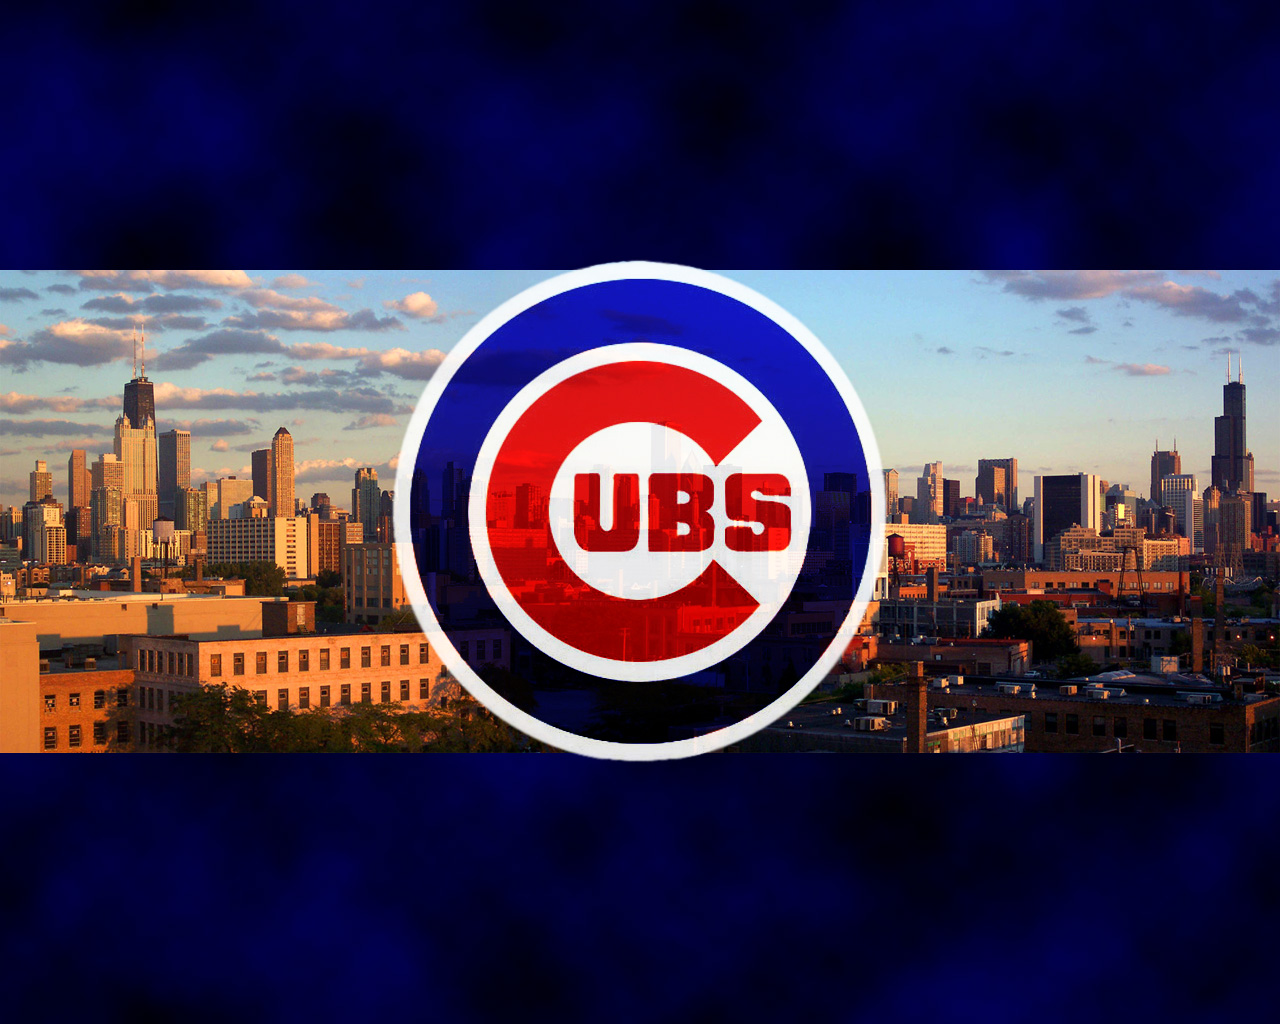 More similar wallpapers Chicago Cubs 1280x1024